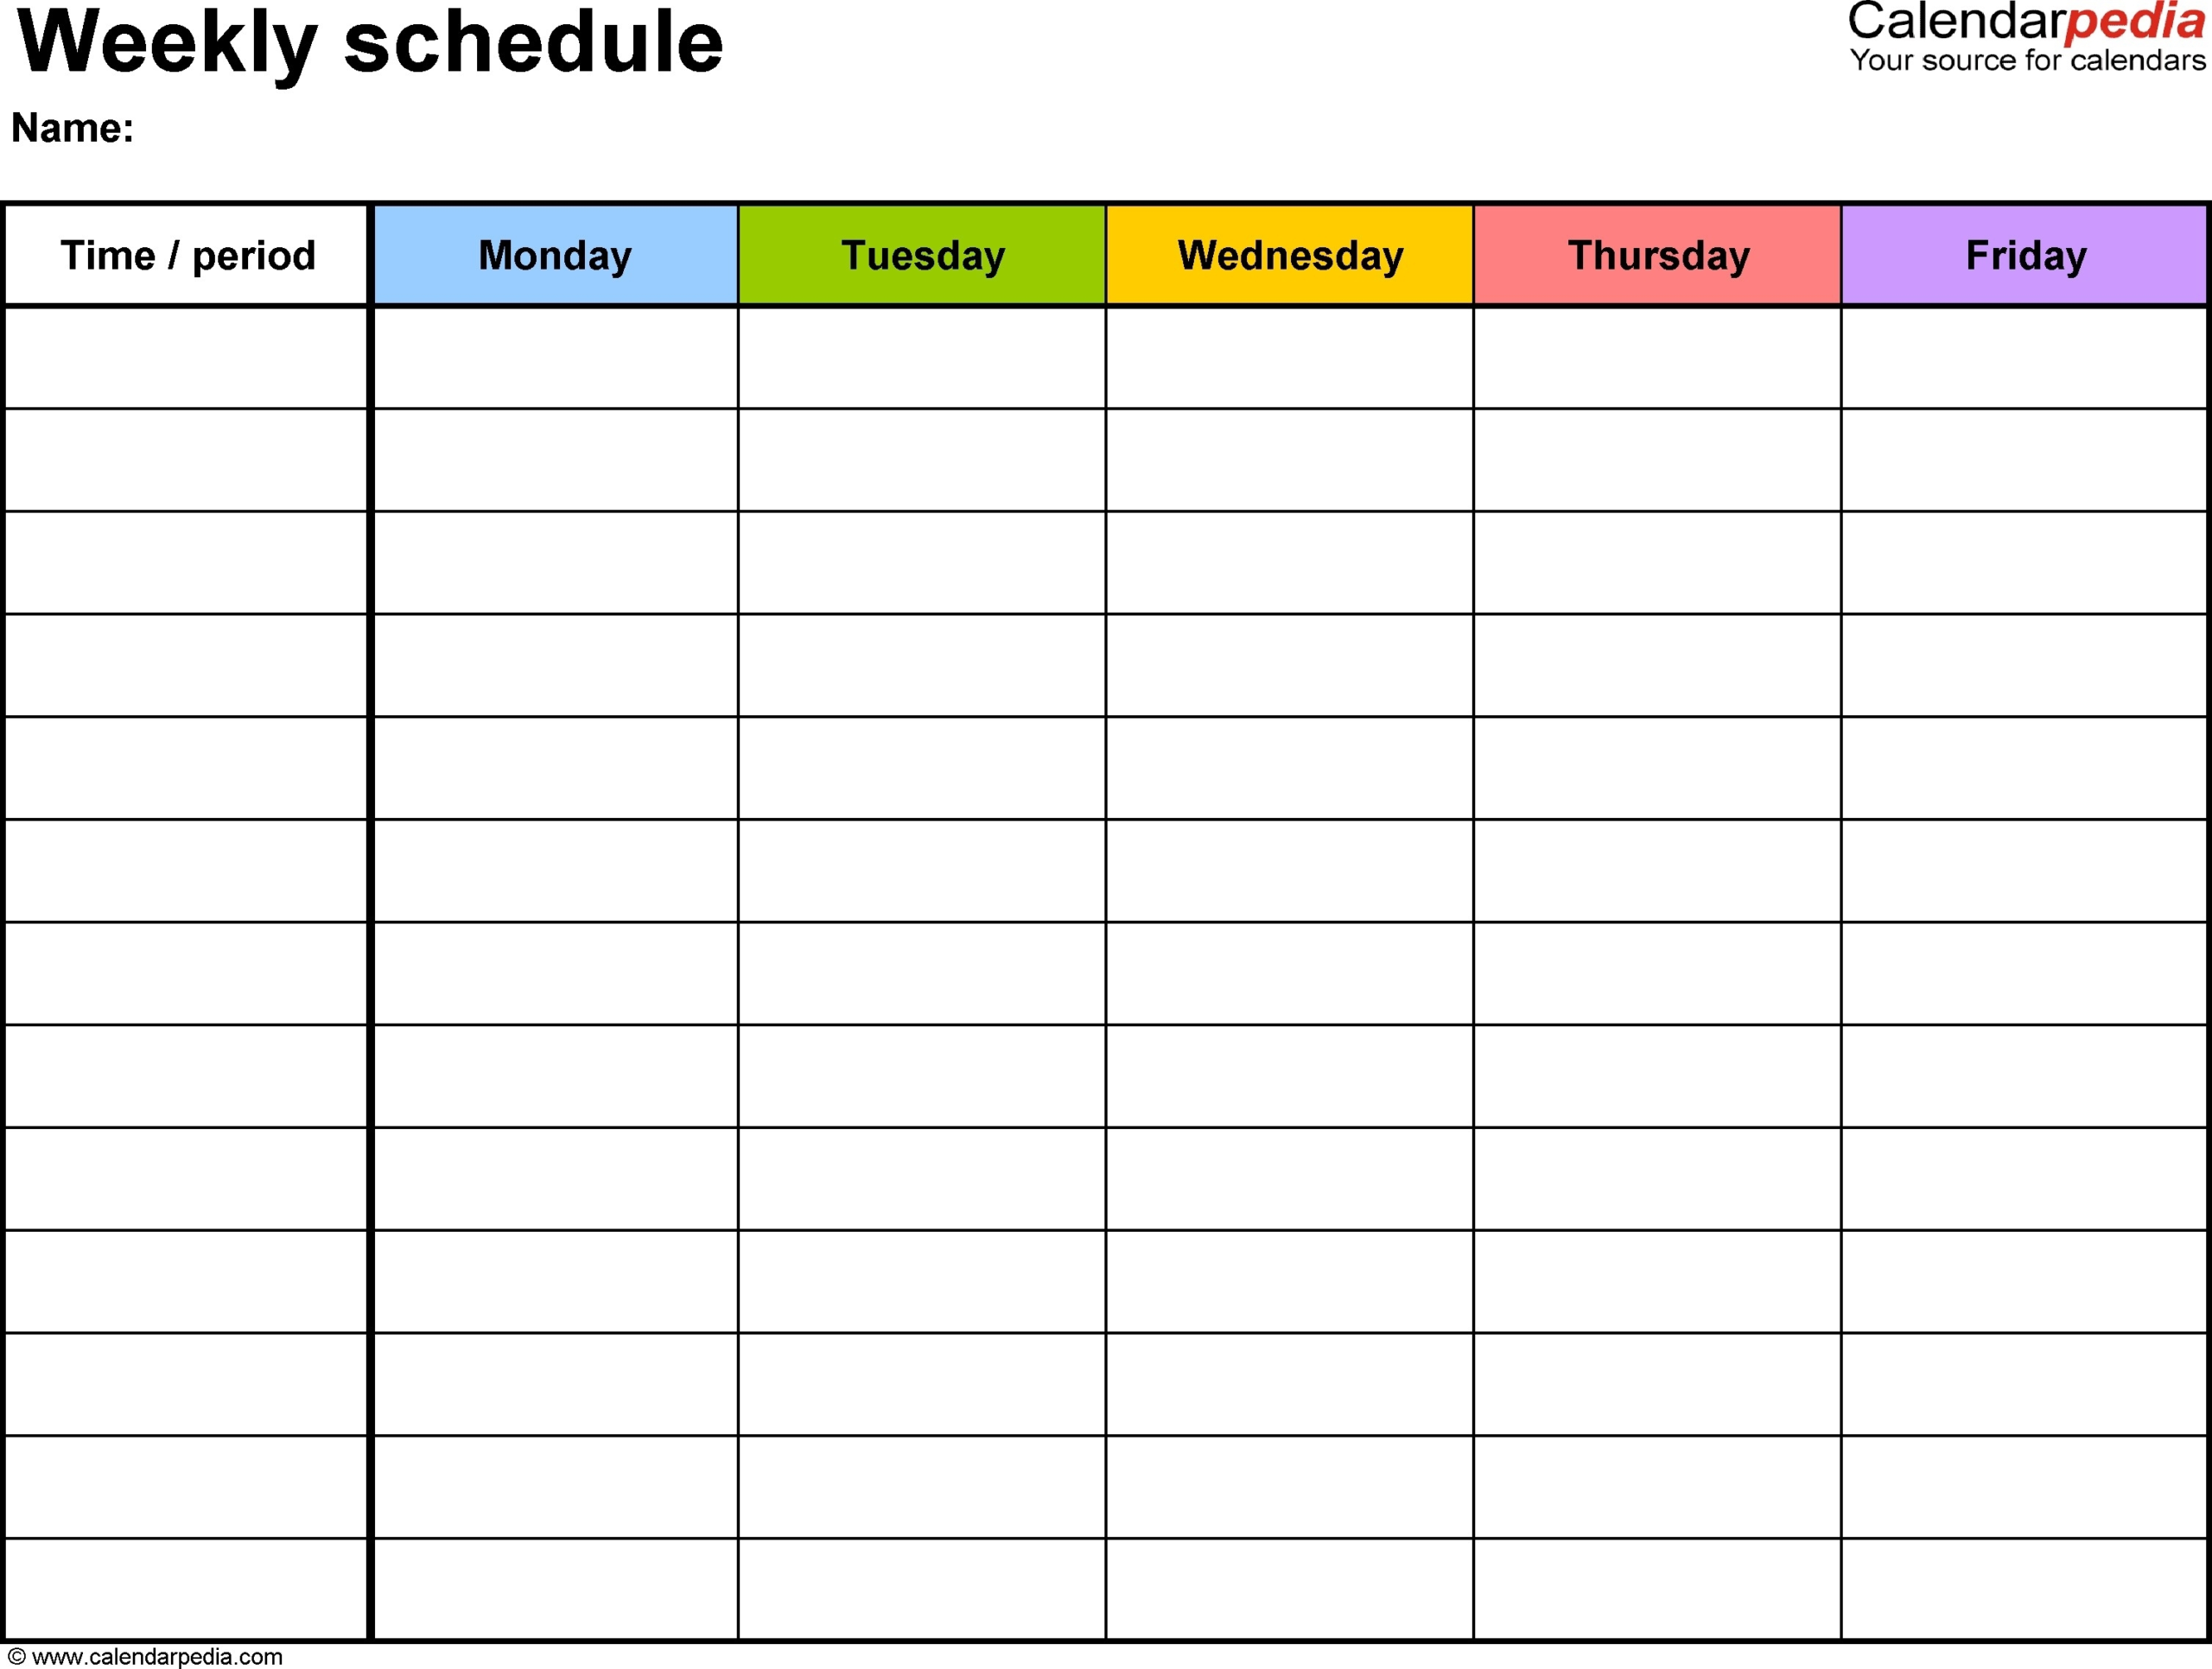 Printable Calendar With Time Slots | Ten Free Printable regarding Weekly Calendar With Time